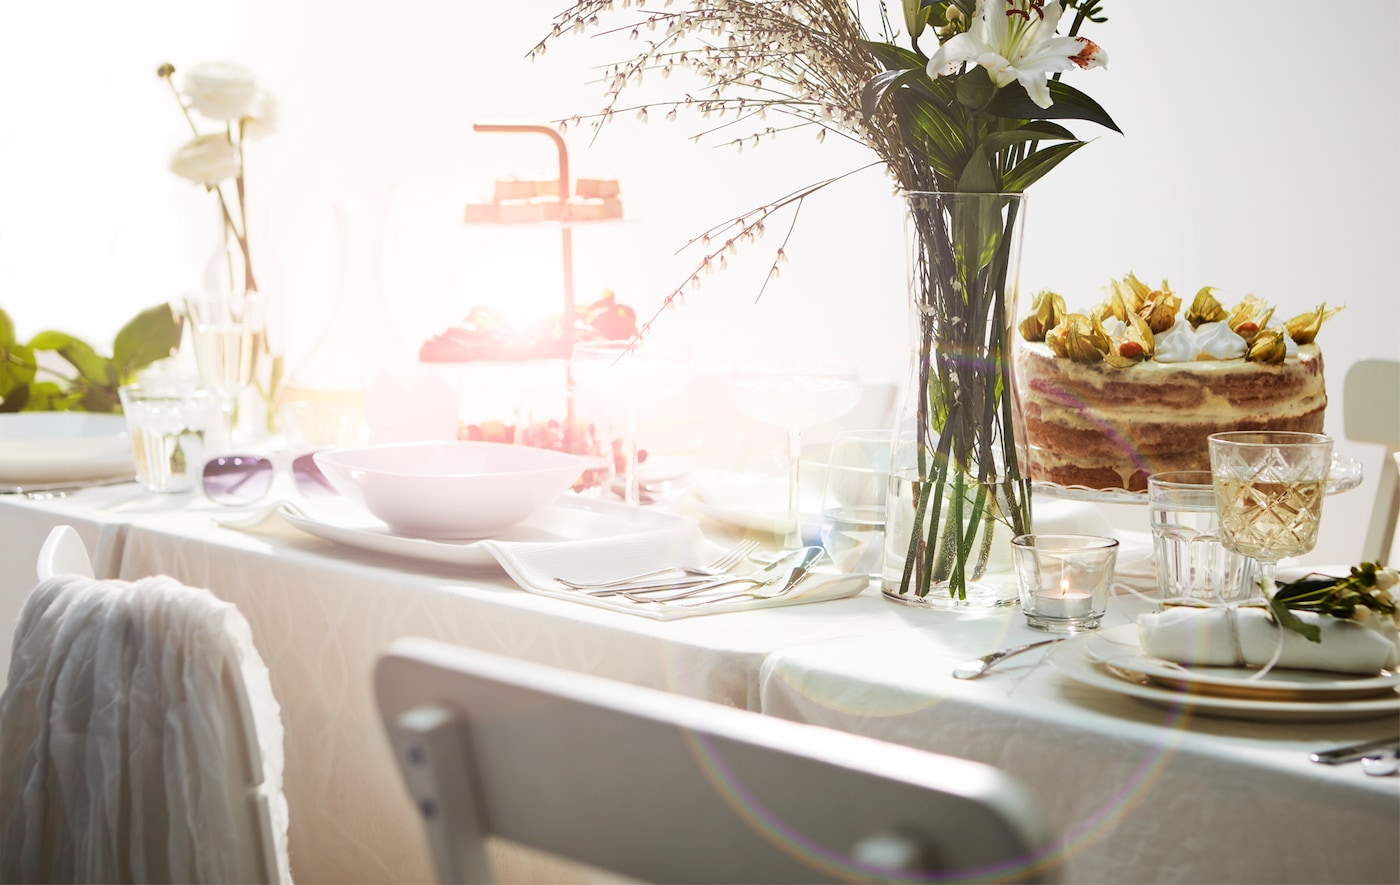 Section of long table set in a romantic, lavish way with white furniture, cloth and tableware; cake, cookie tray and flowers.